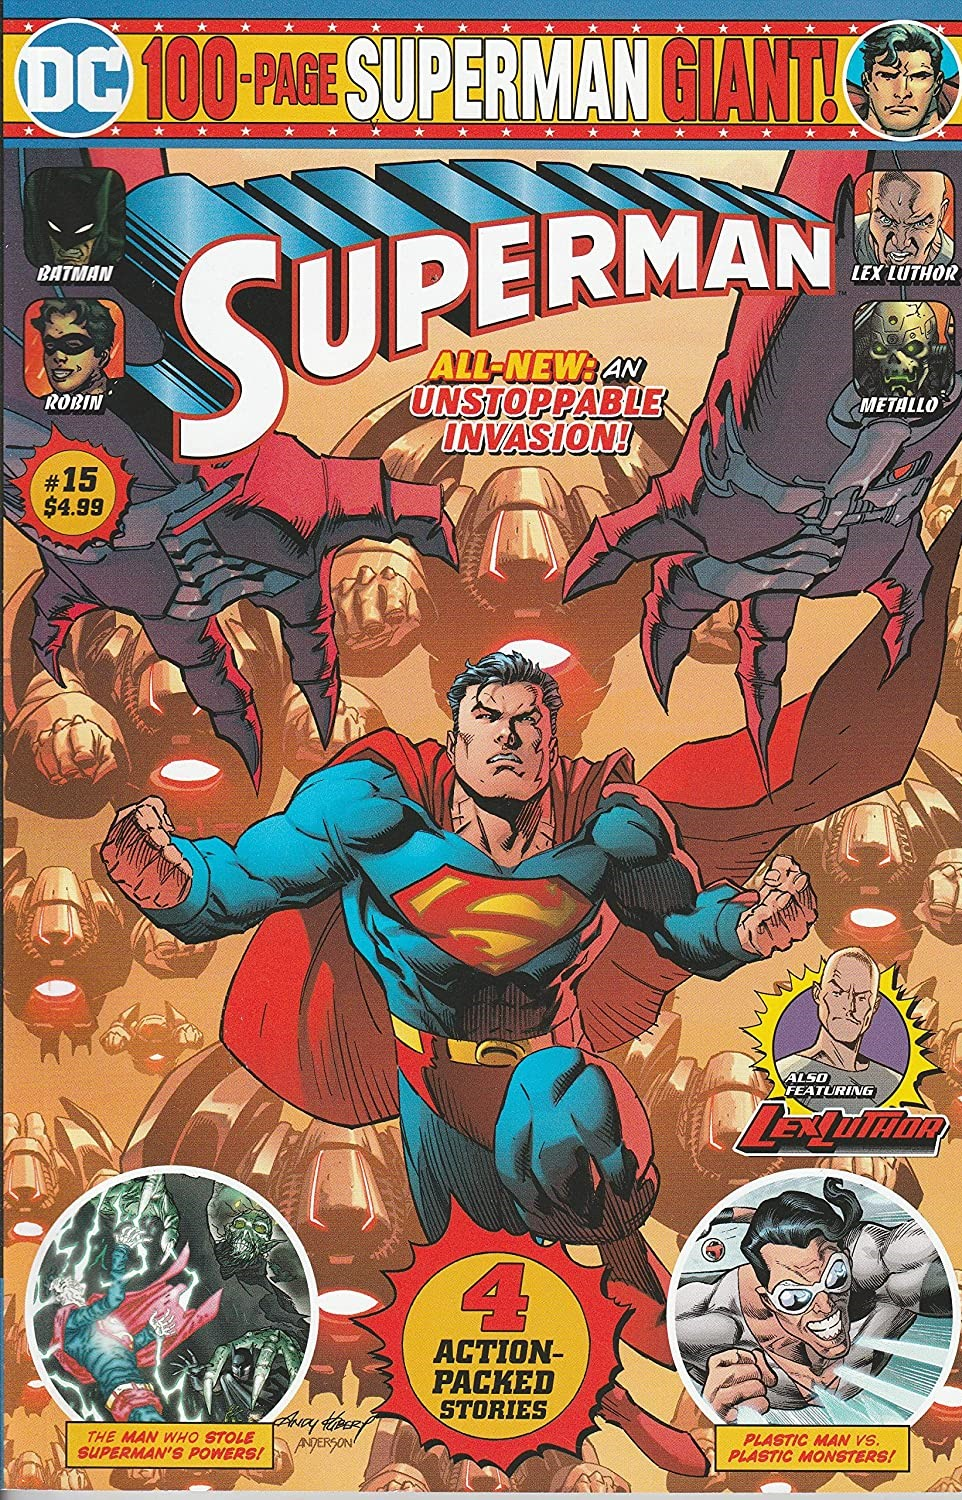 Superman Giant Vol 1 15